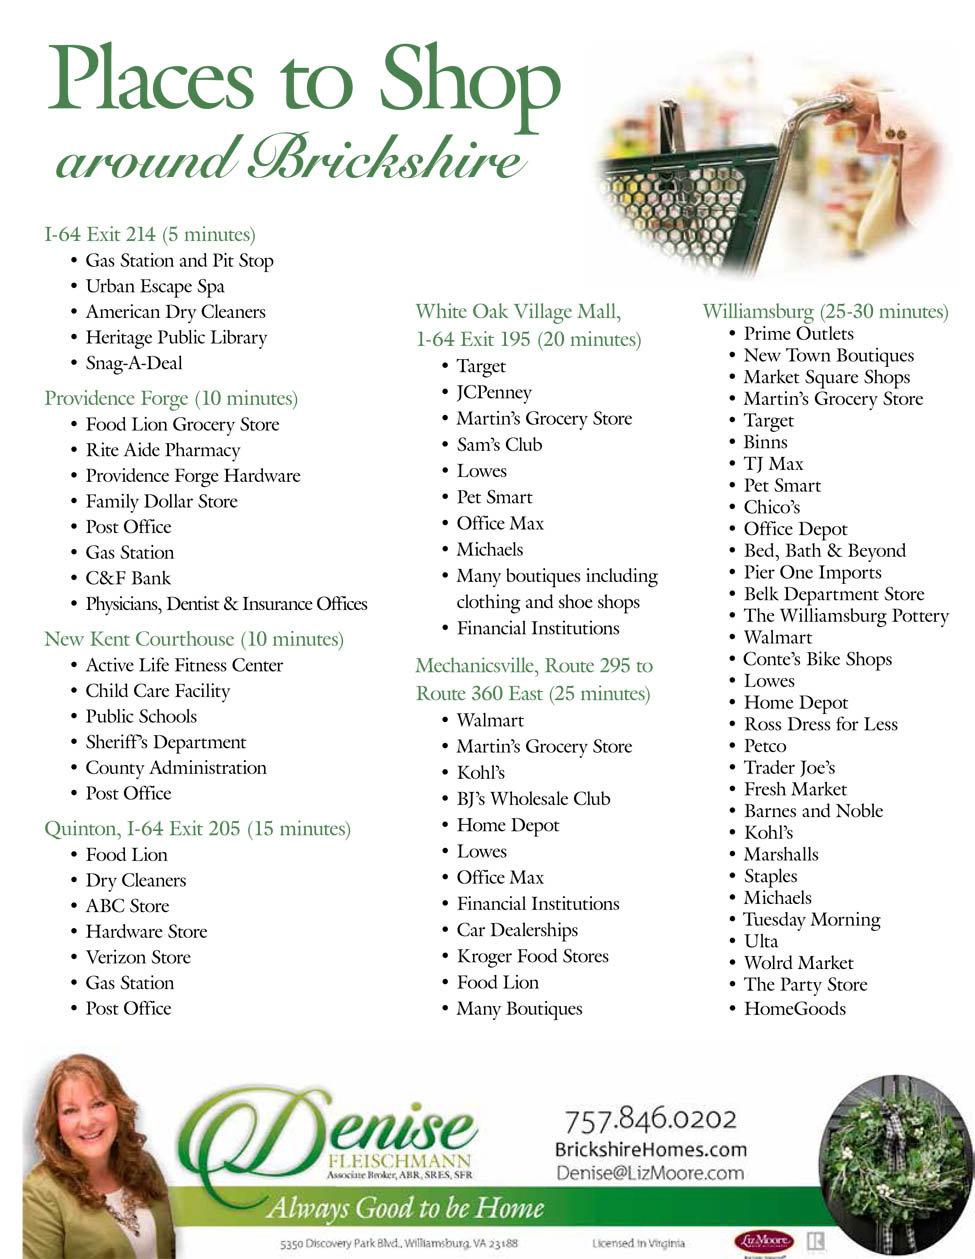 Places to Shop near Brickshire in New Kent, Virginia, courtesy of Denise Fleischmann, Realtor